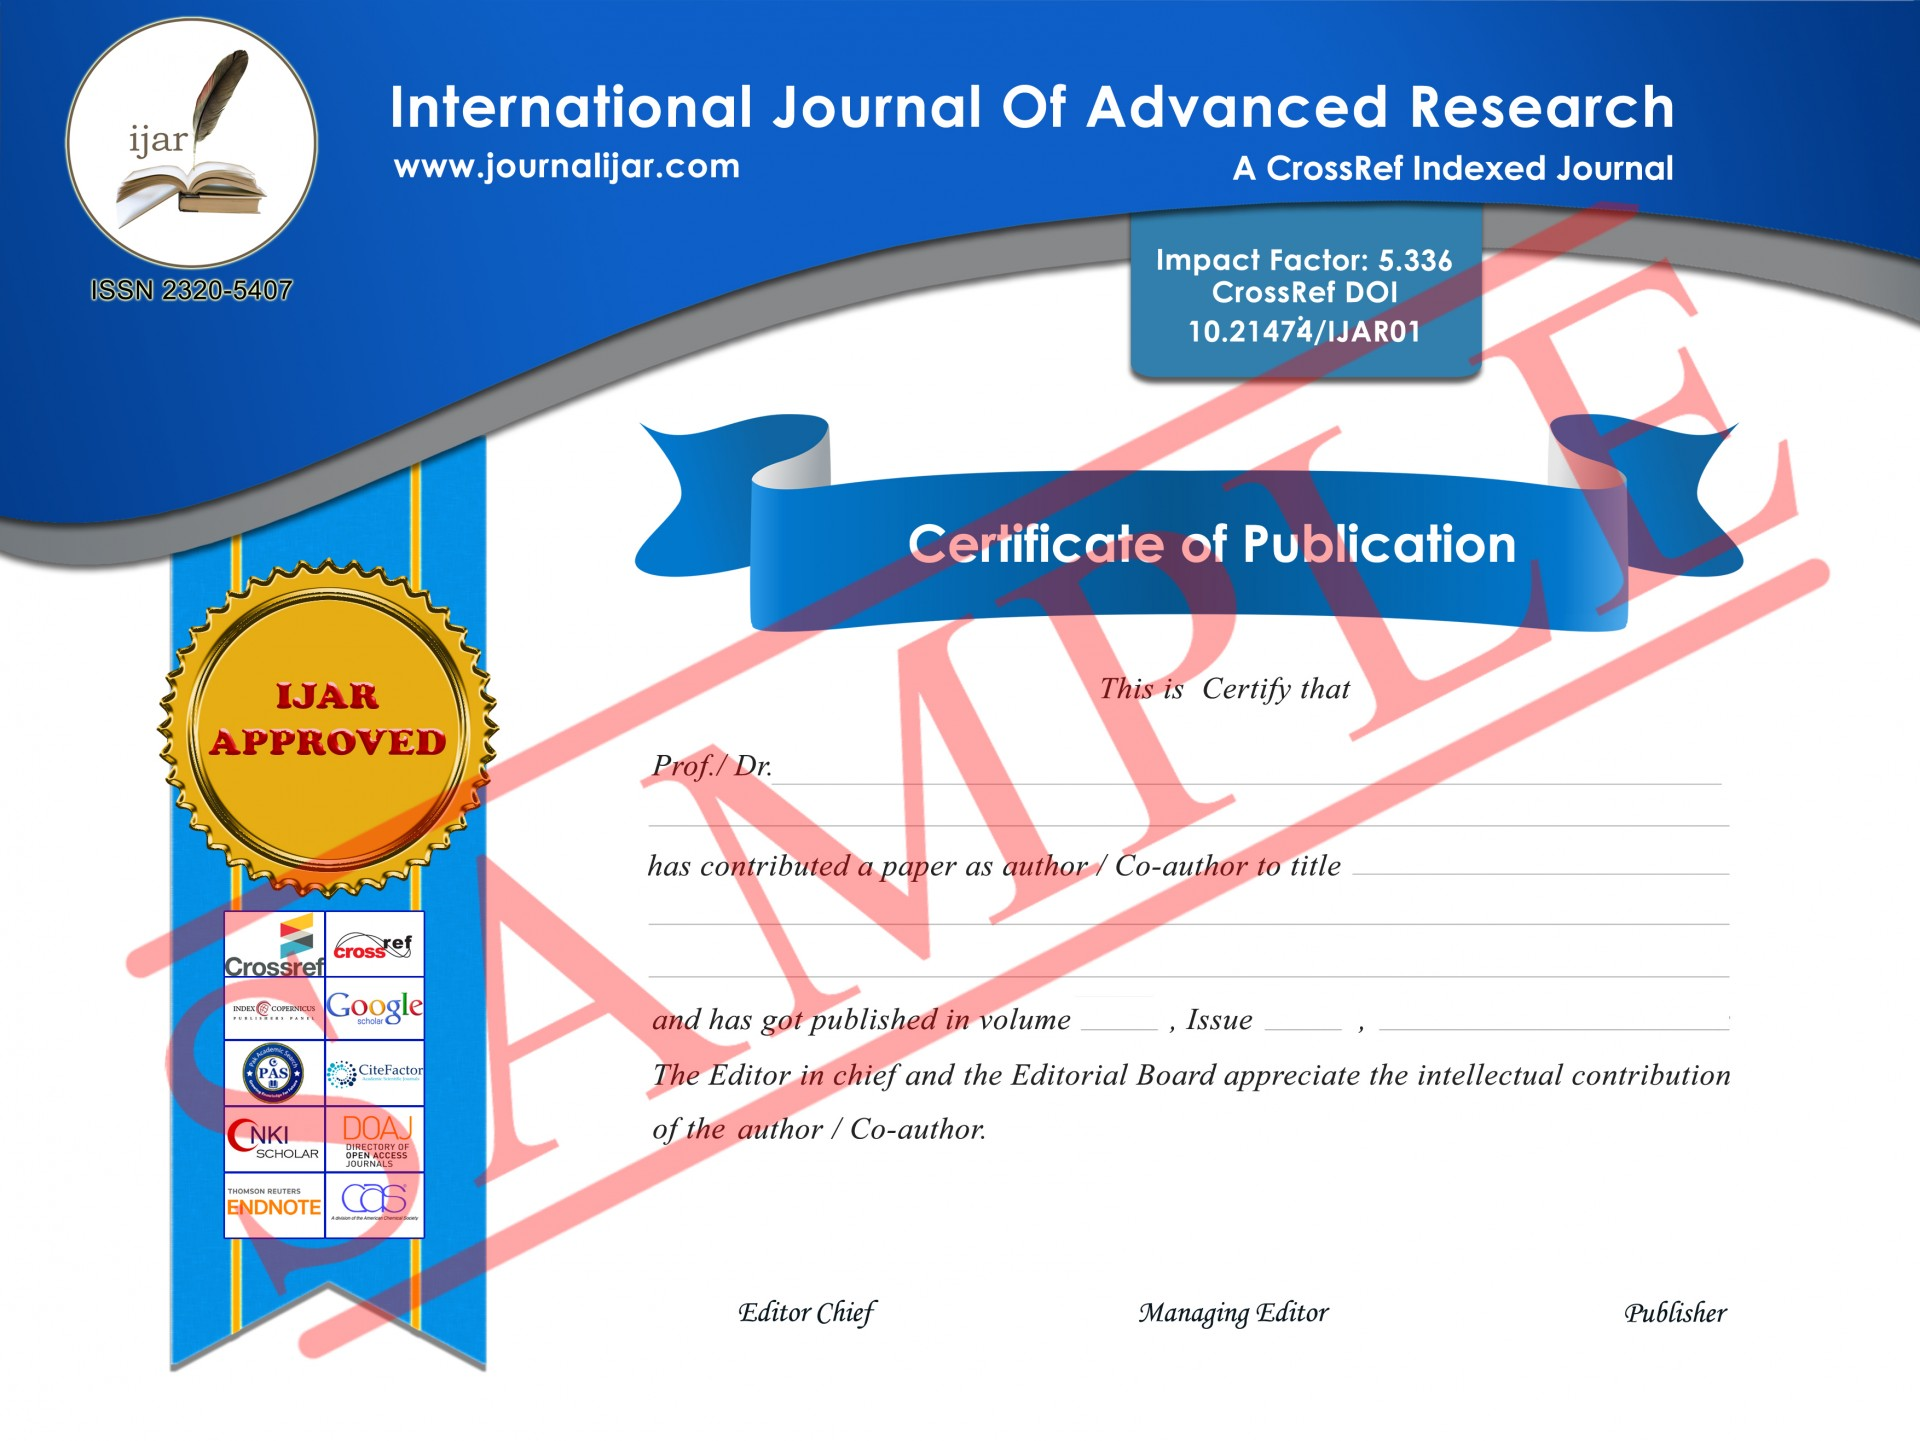 013 Research Paper Certificate Sample How To Publish In International Journal Free Unusual Pdf 1920